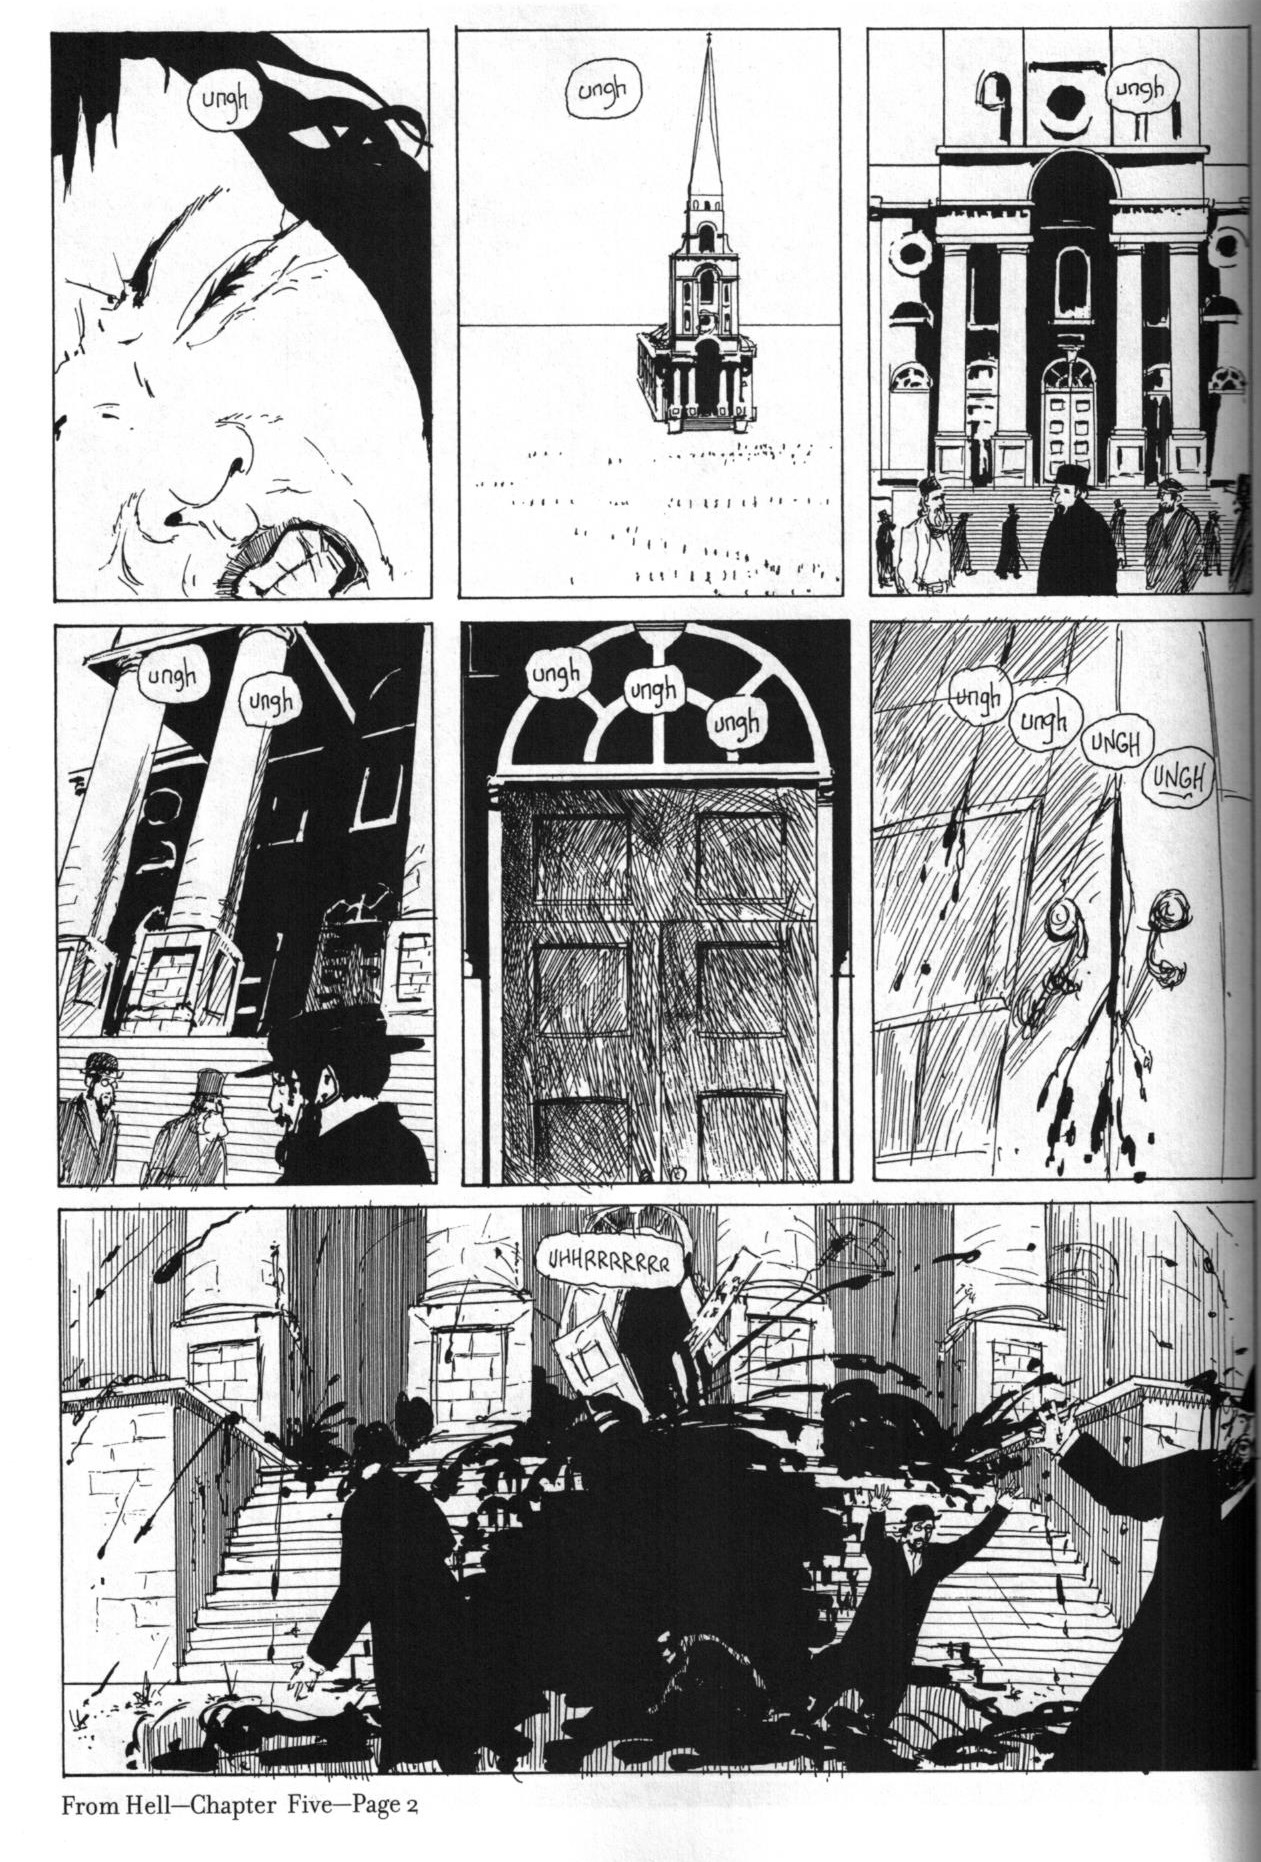 fromhell8_chapitre5_page2.jpg